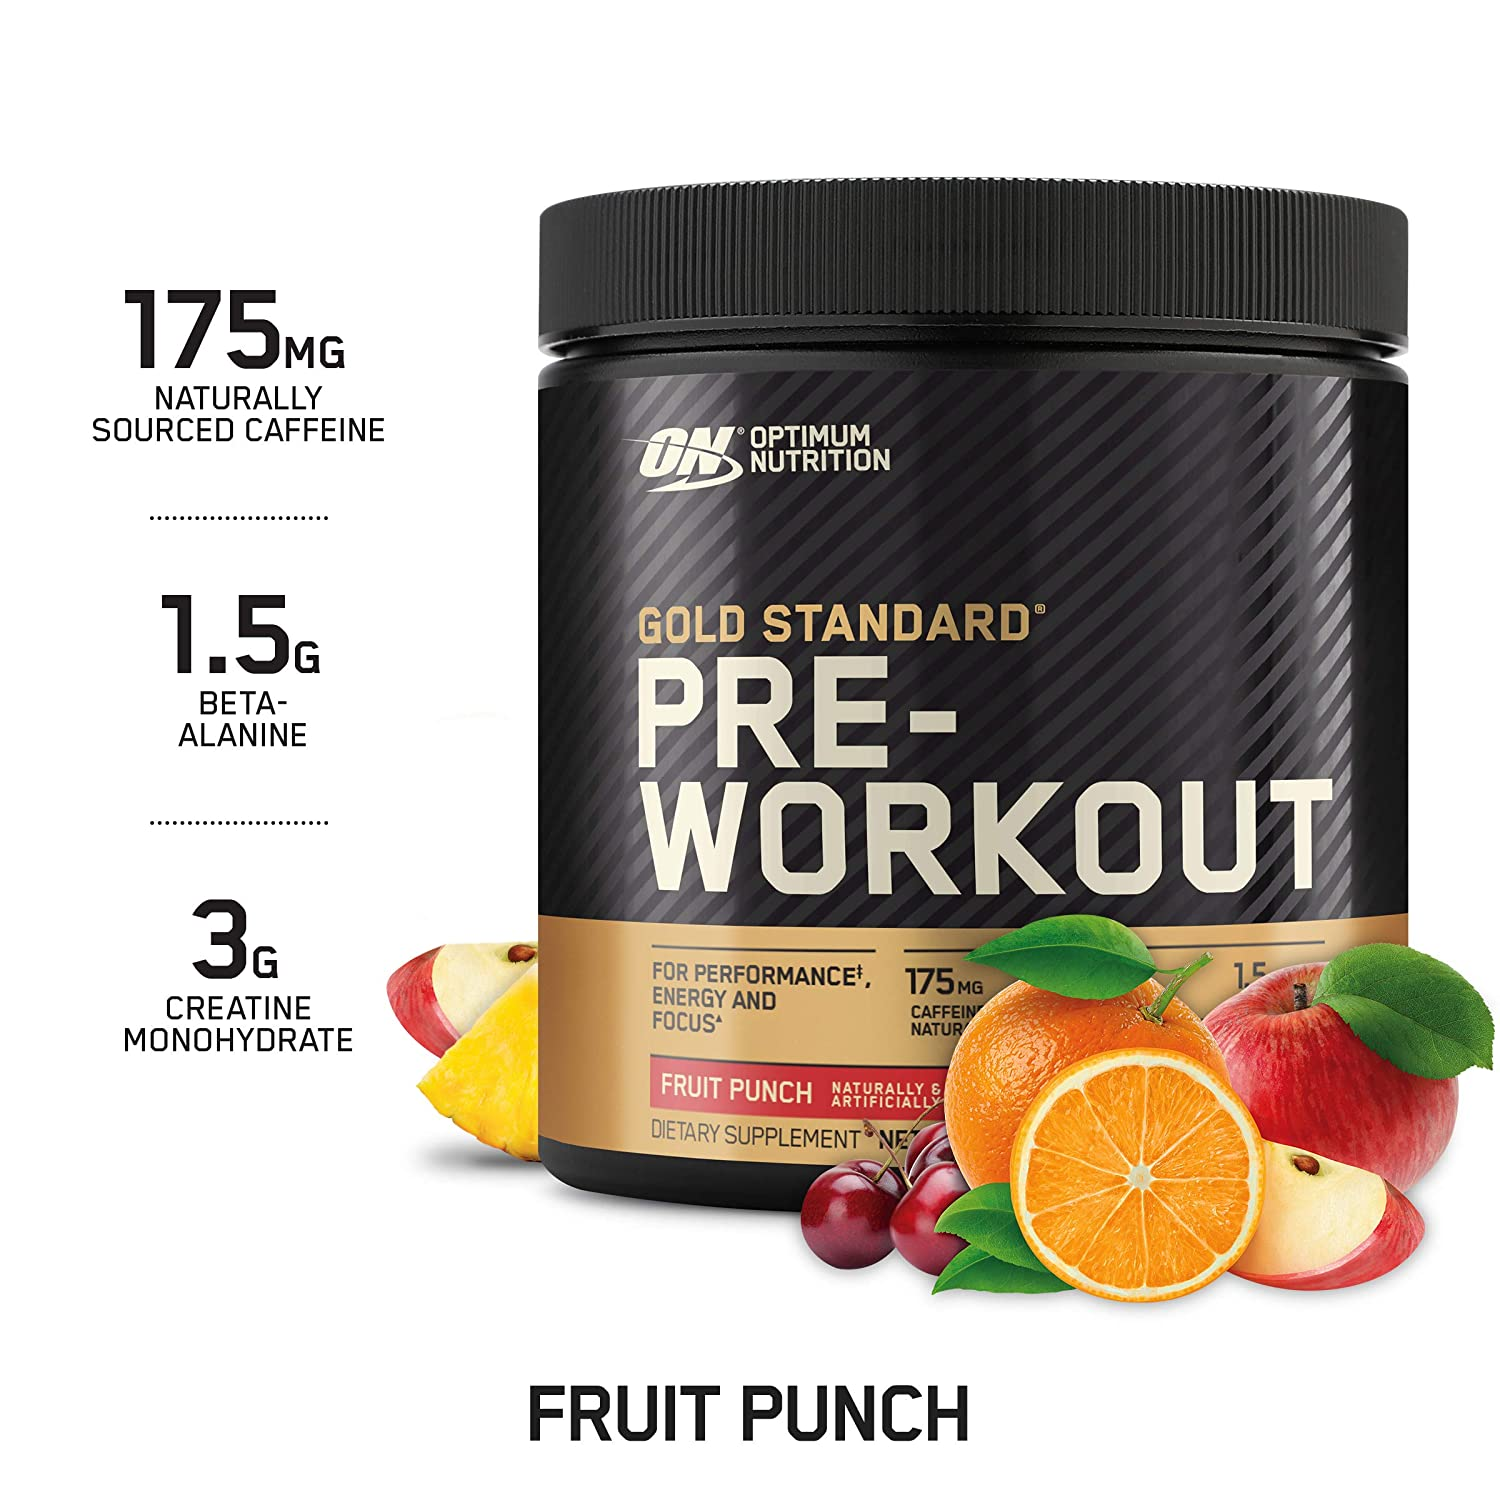 6. Optimum Nutrition Gold Standard PWO